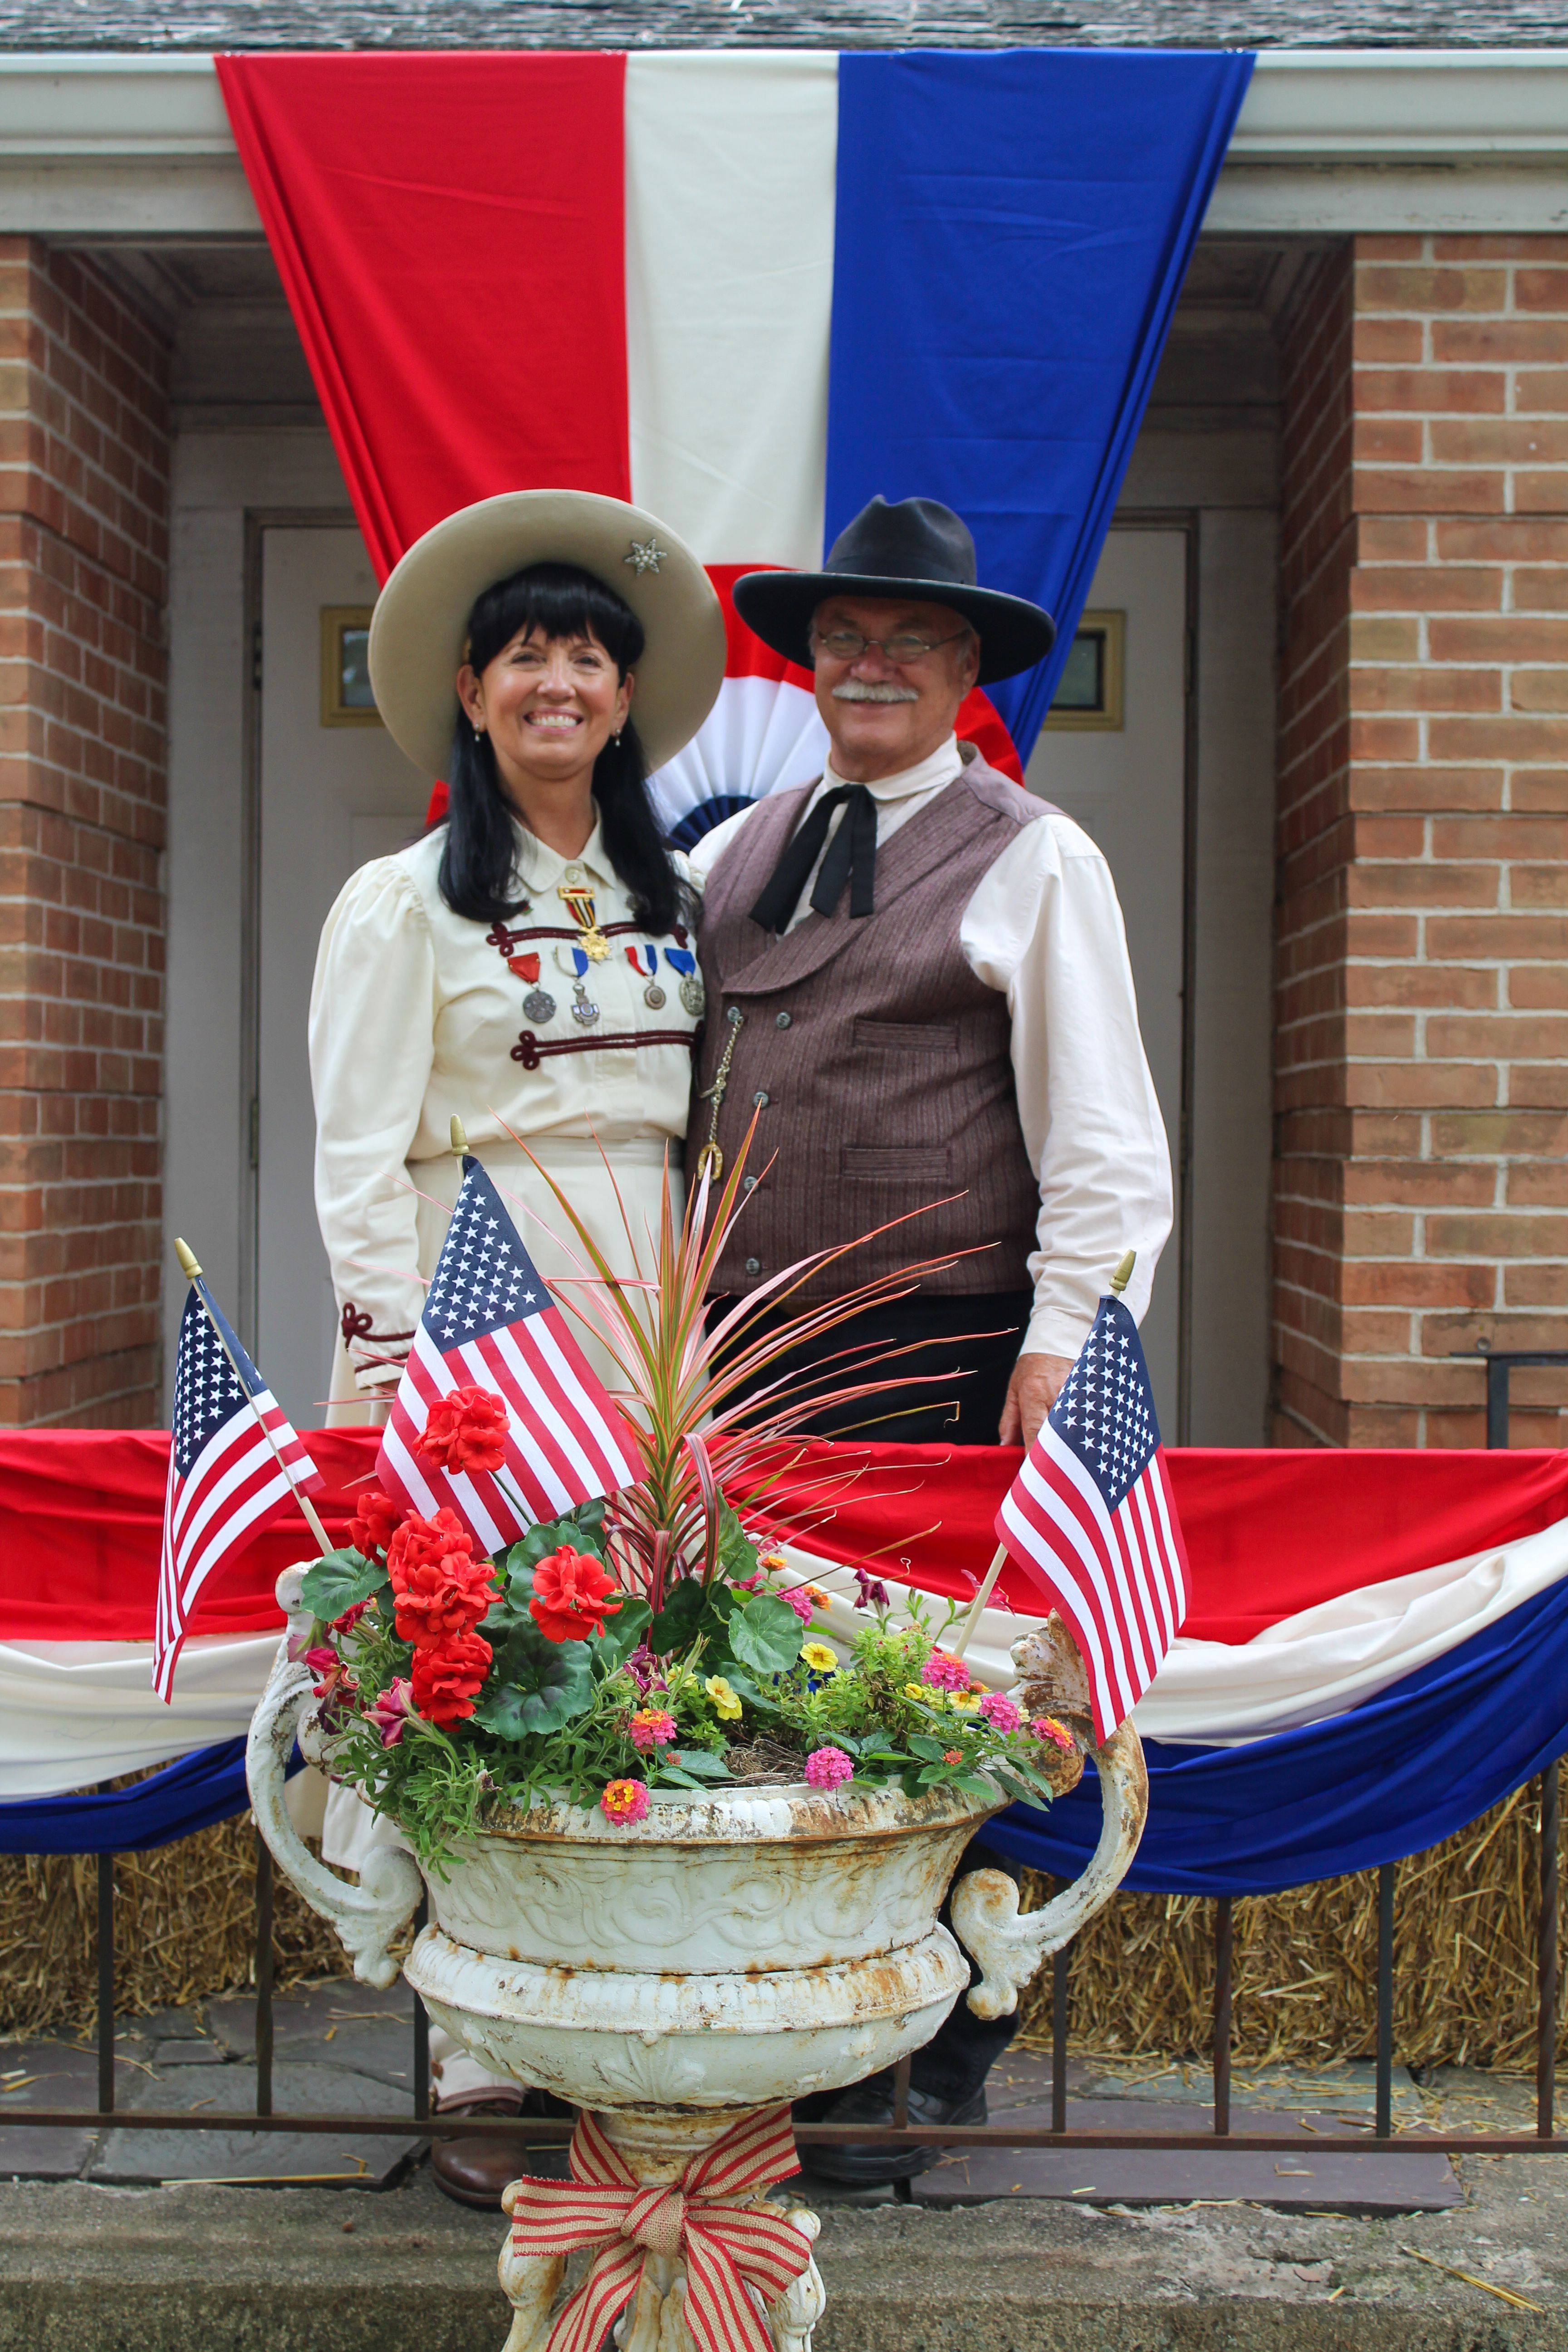 Annie oakley frank butler impersonators at the gathering